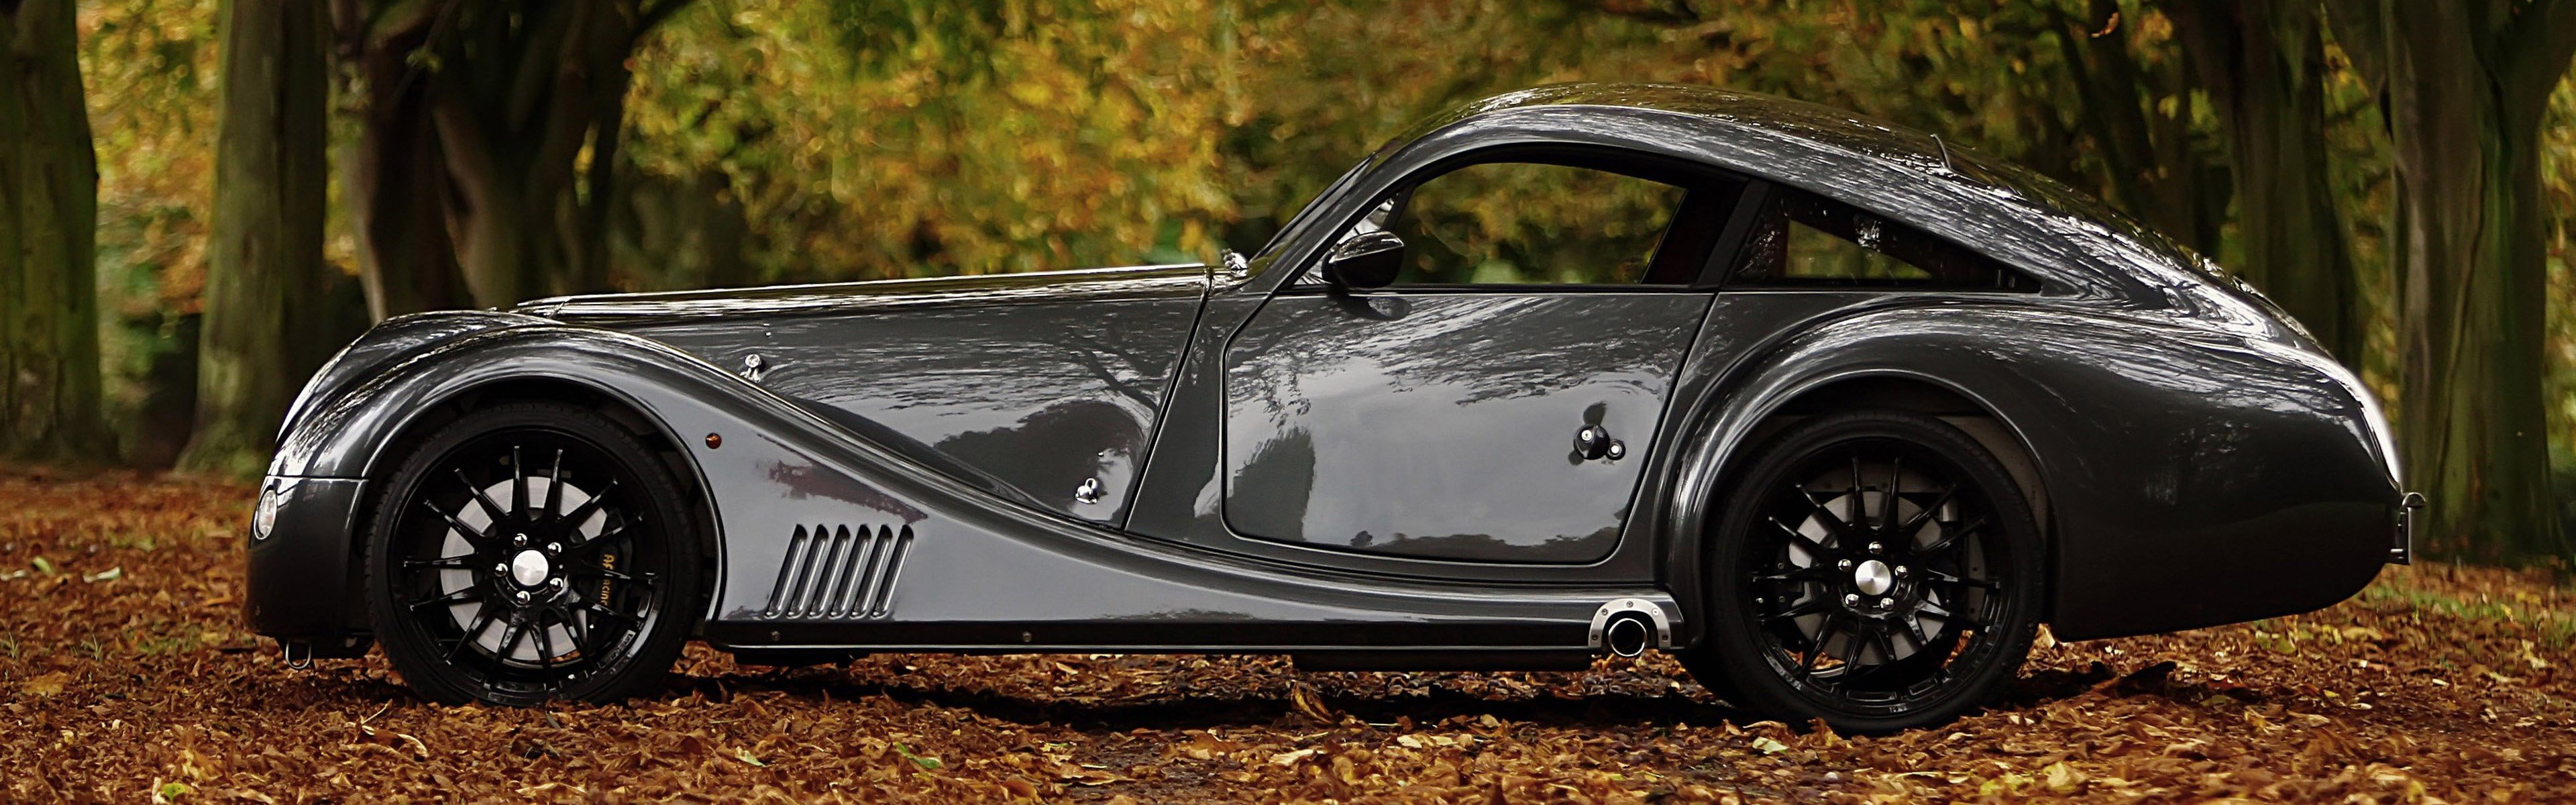 Latest Morgan Aero 8 Hd Wallpaper Background Image 3840X1200 Free Download